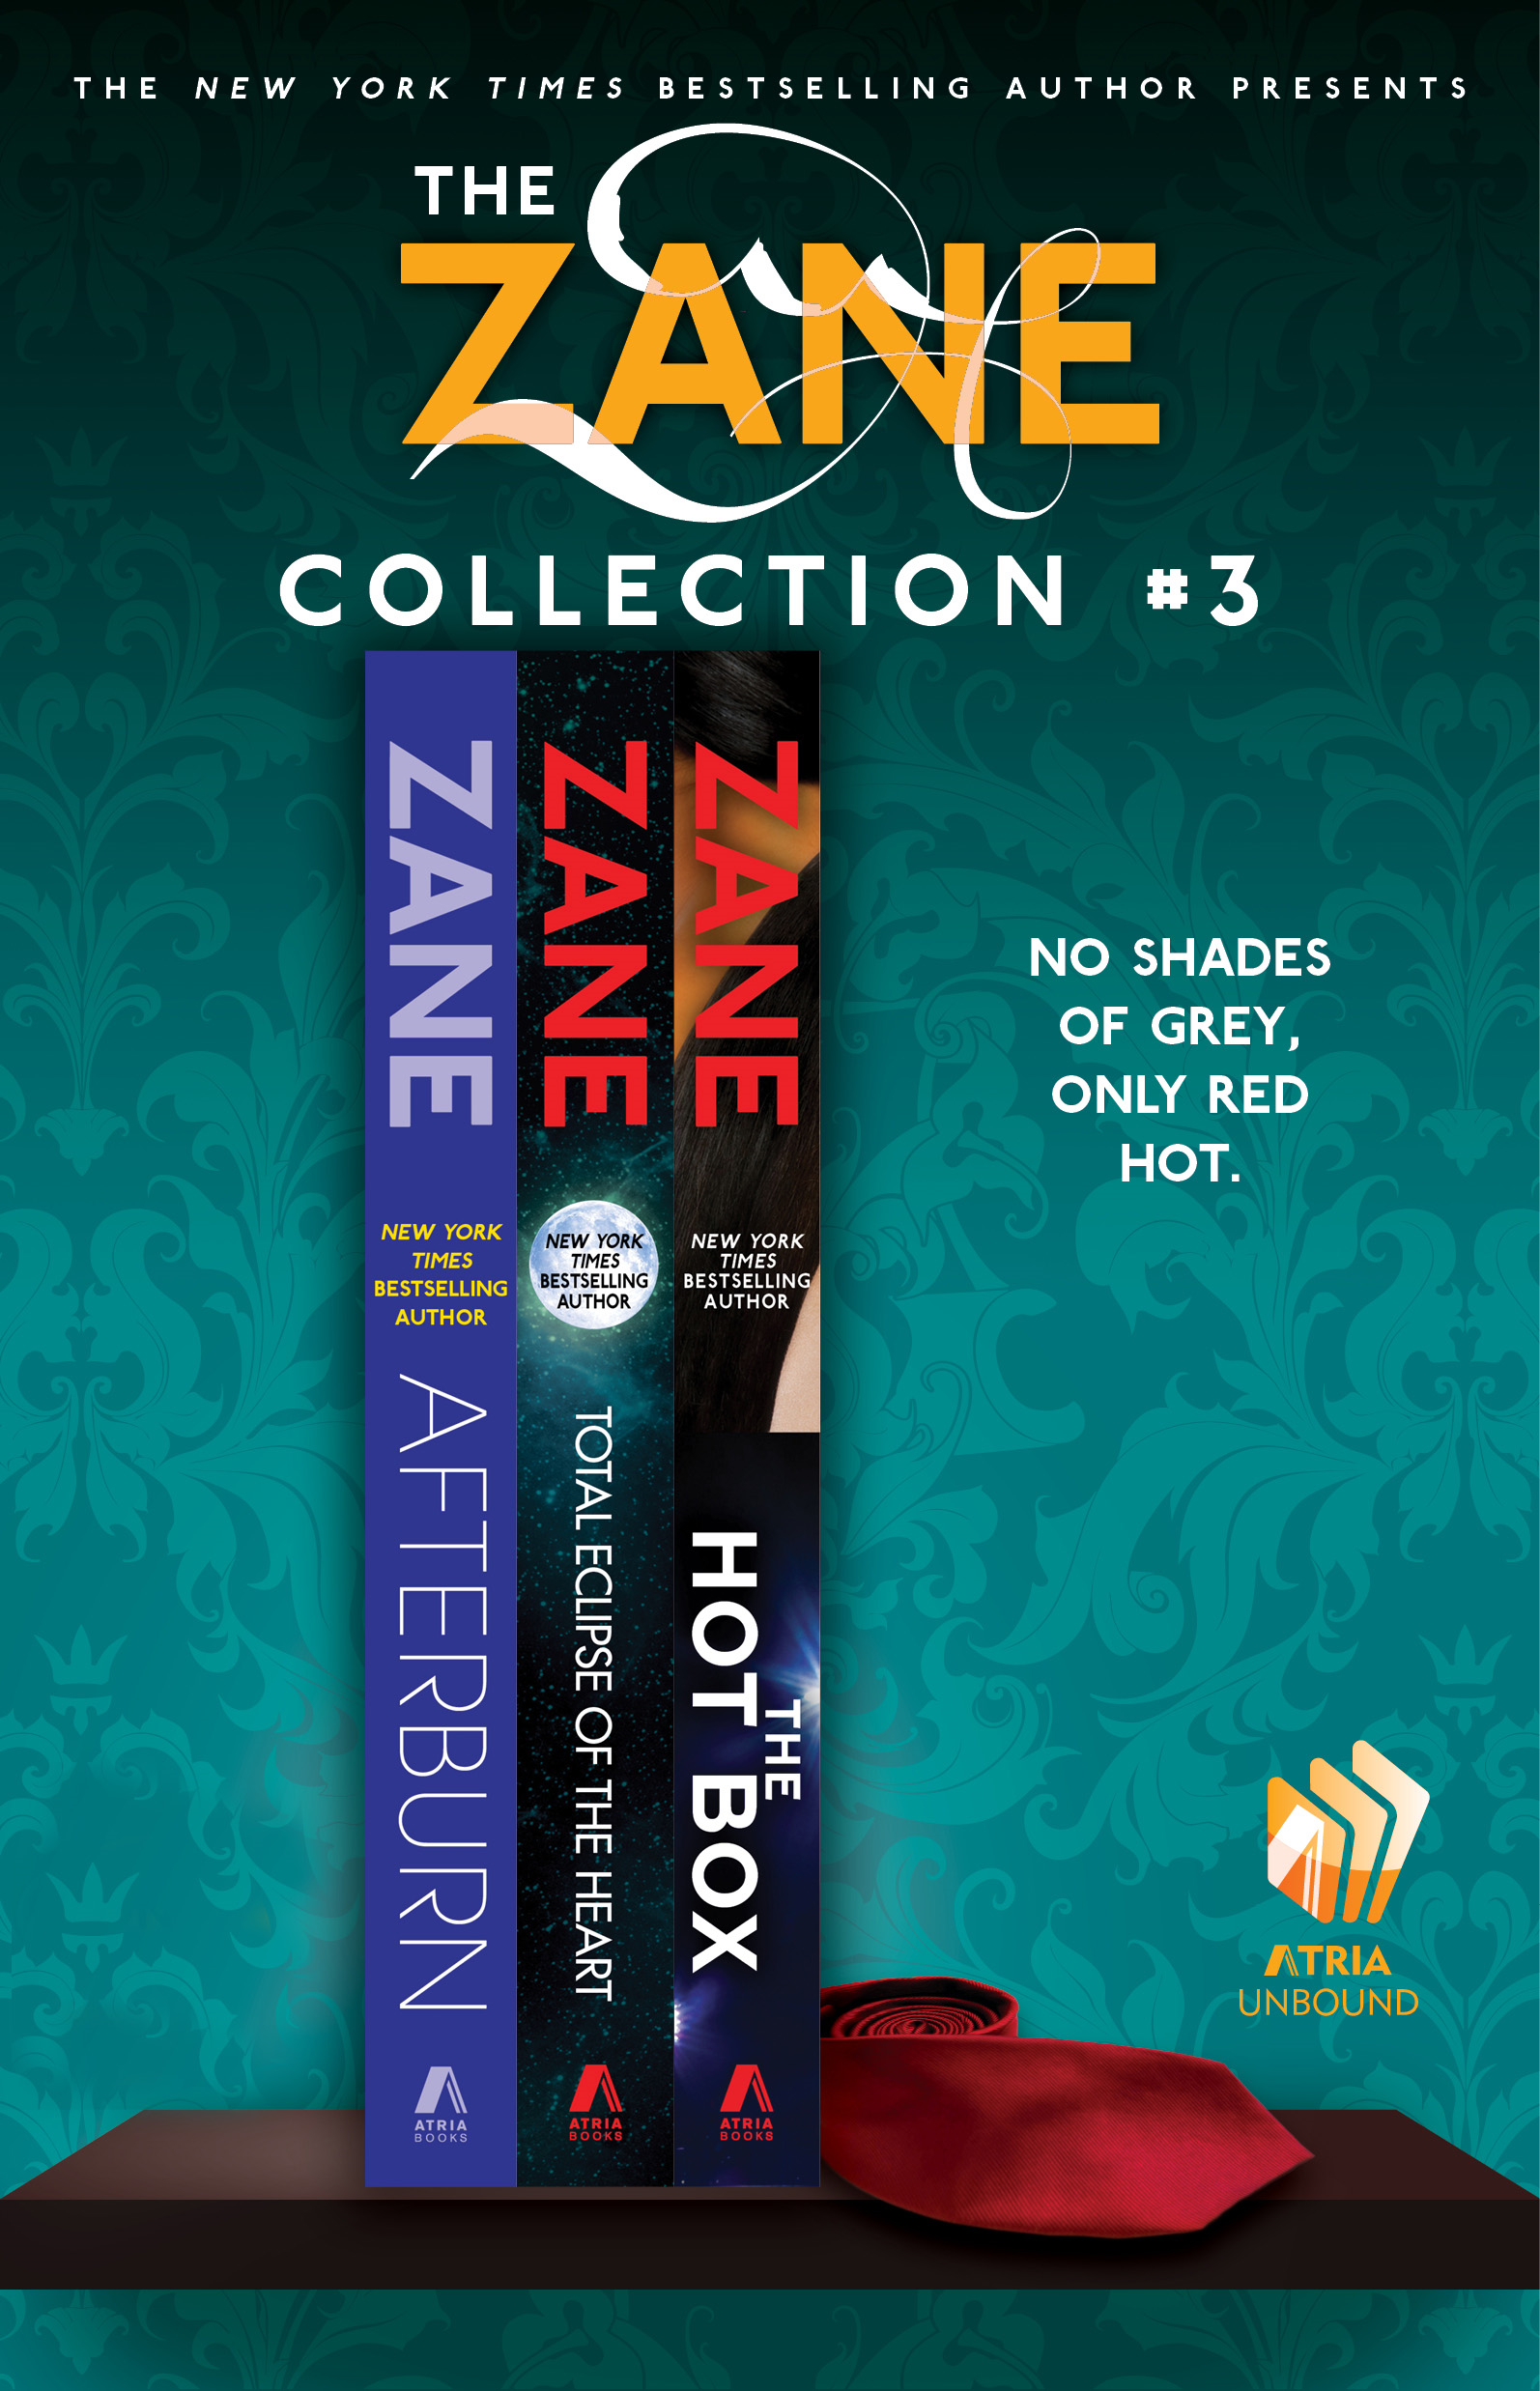 The Zane Collection #3